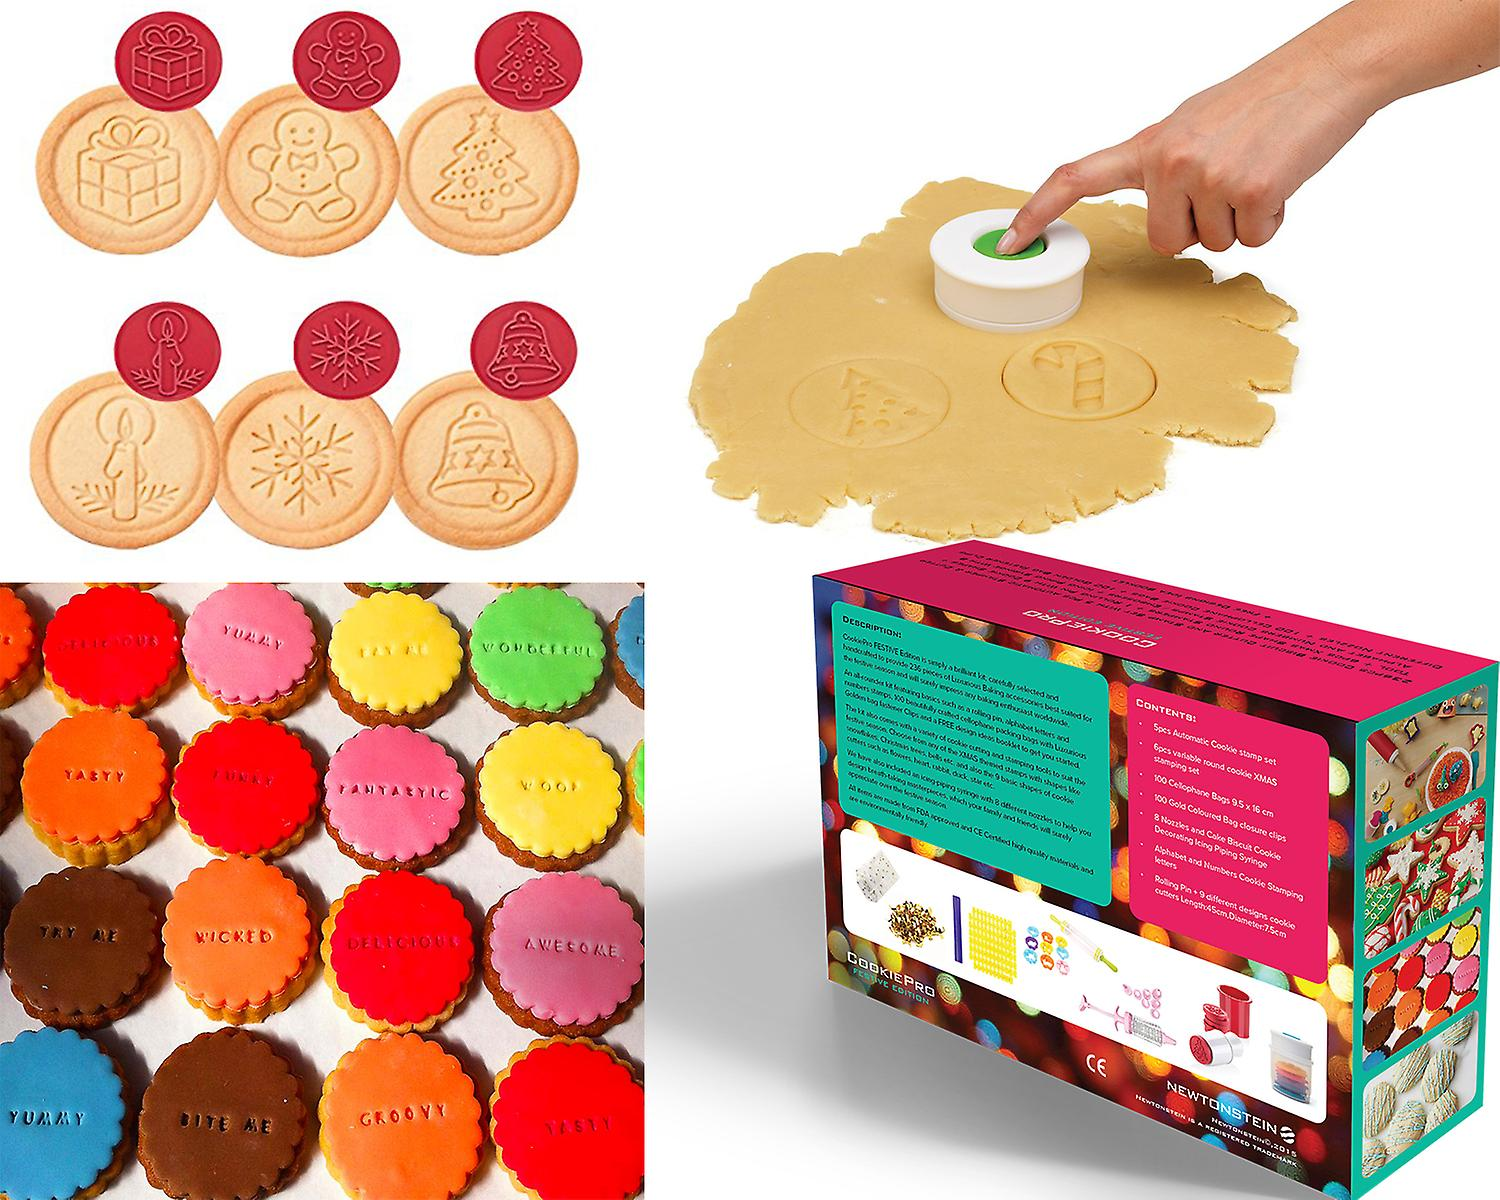 28524fc9933b Cookiepro Festive Edition - 231pcs Cookie Biscuit Cutter And Stamp Set With  6pcs Xmas Shape Round Stampers + 1 Decorating Icing Pen + 1 Rolling Pin  With 9 ...